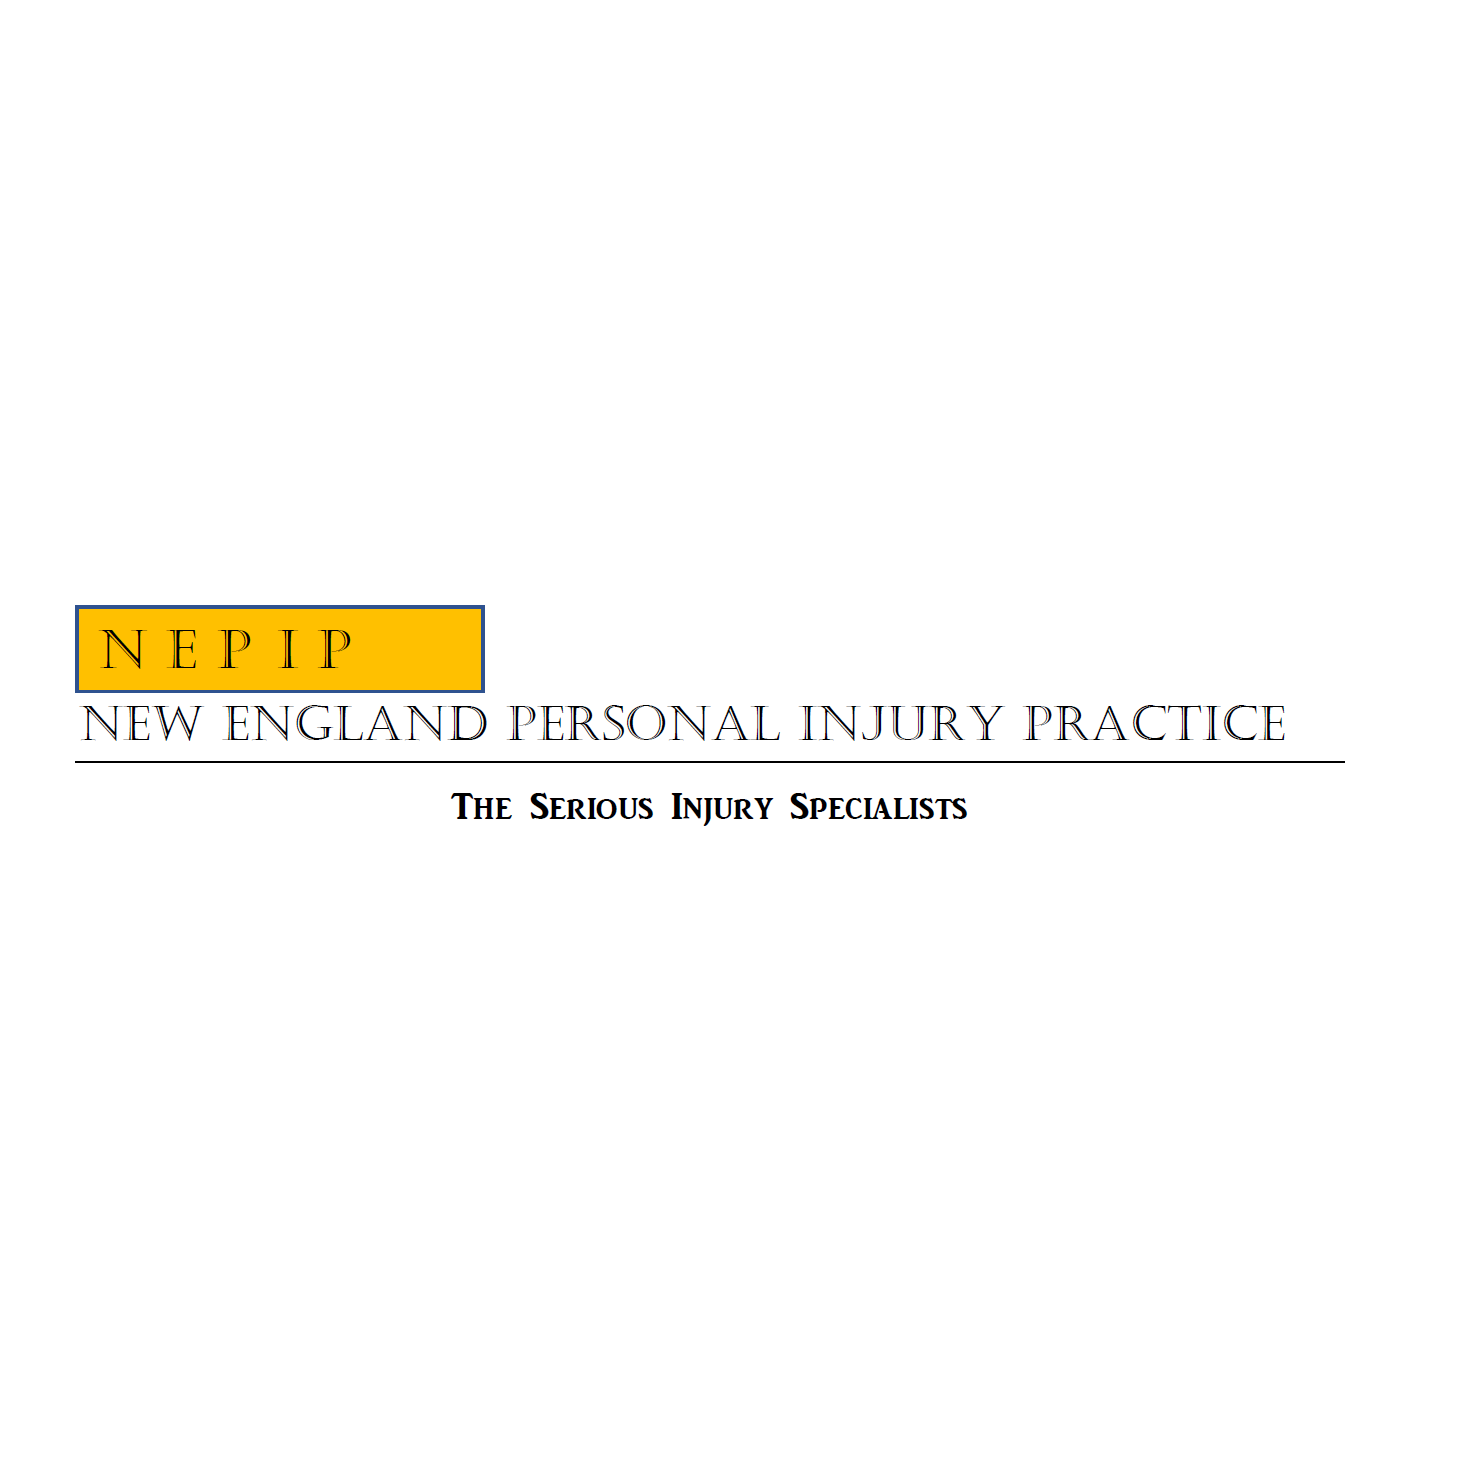 New England Personal Injury Practice